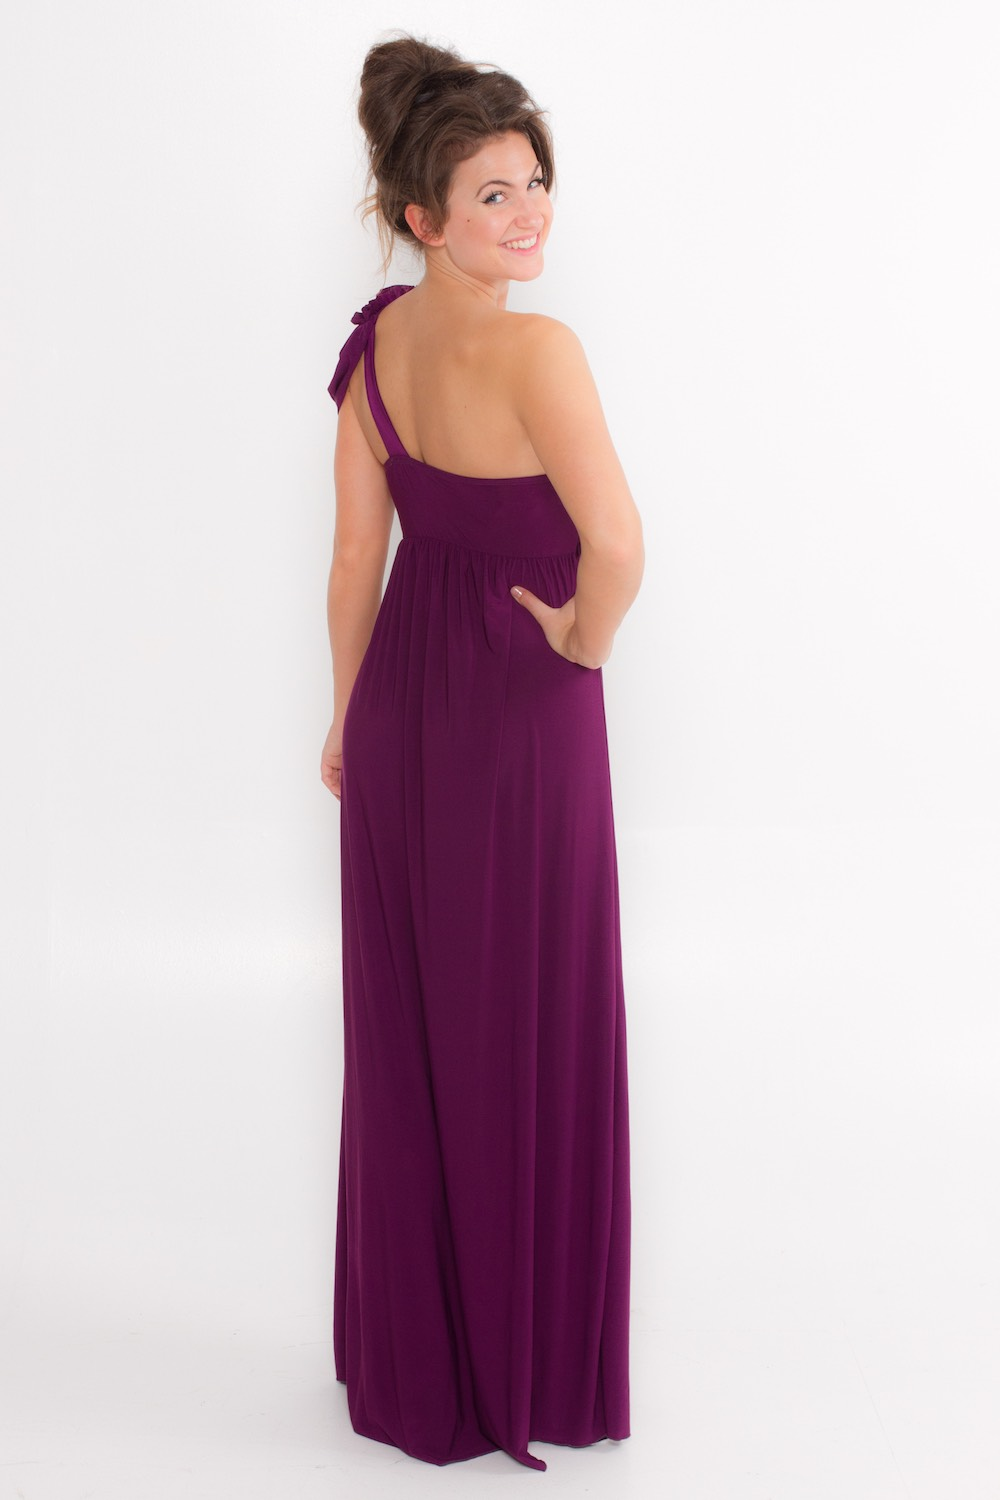 Dress L054 Aubergine Rear